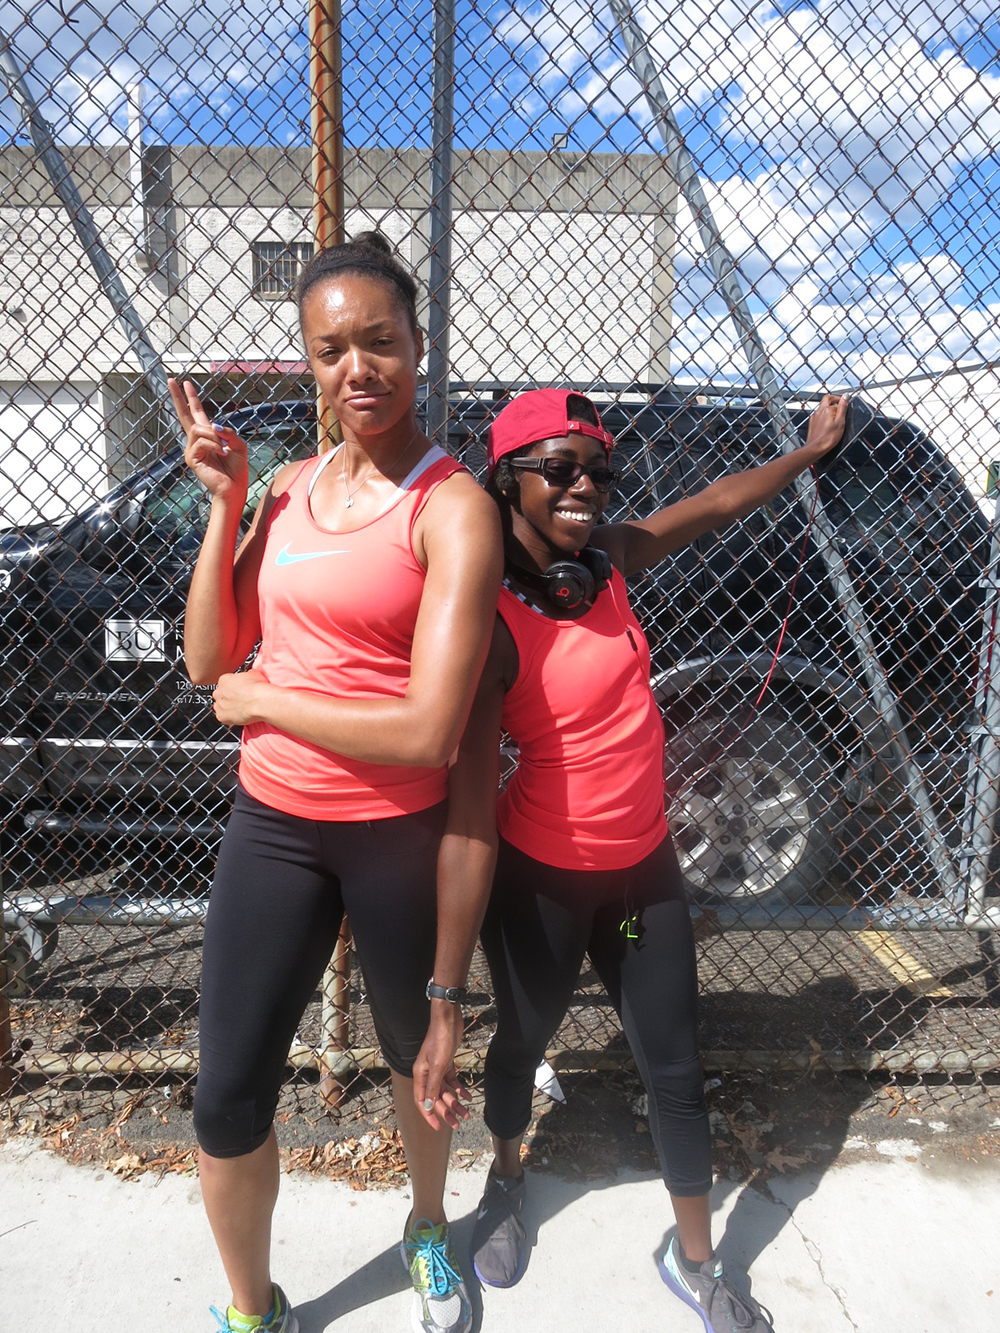 I noticed my teammate/friend, Catherine, and I were matching, so of course we had to take a picture as proof lol